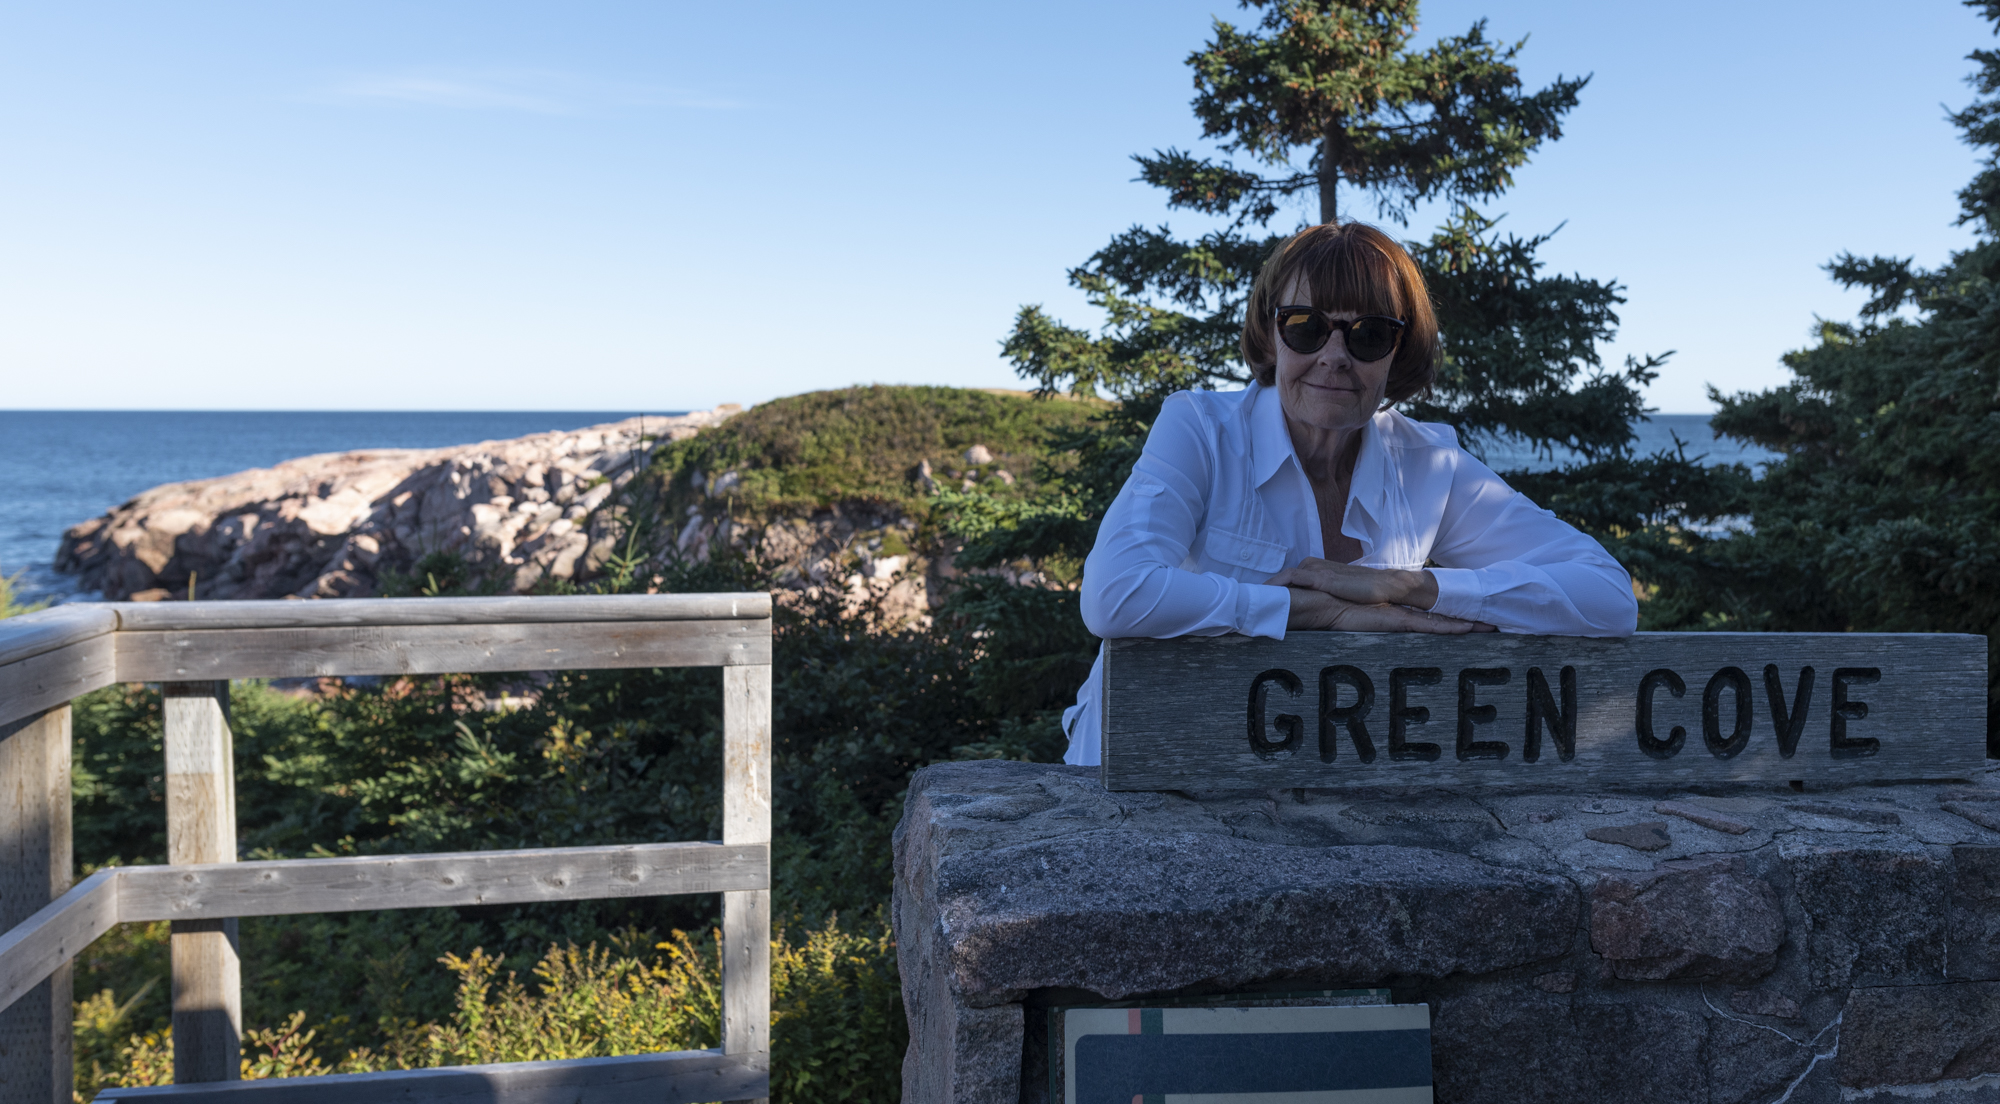 Green Cove, our final hike for the day. . .